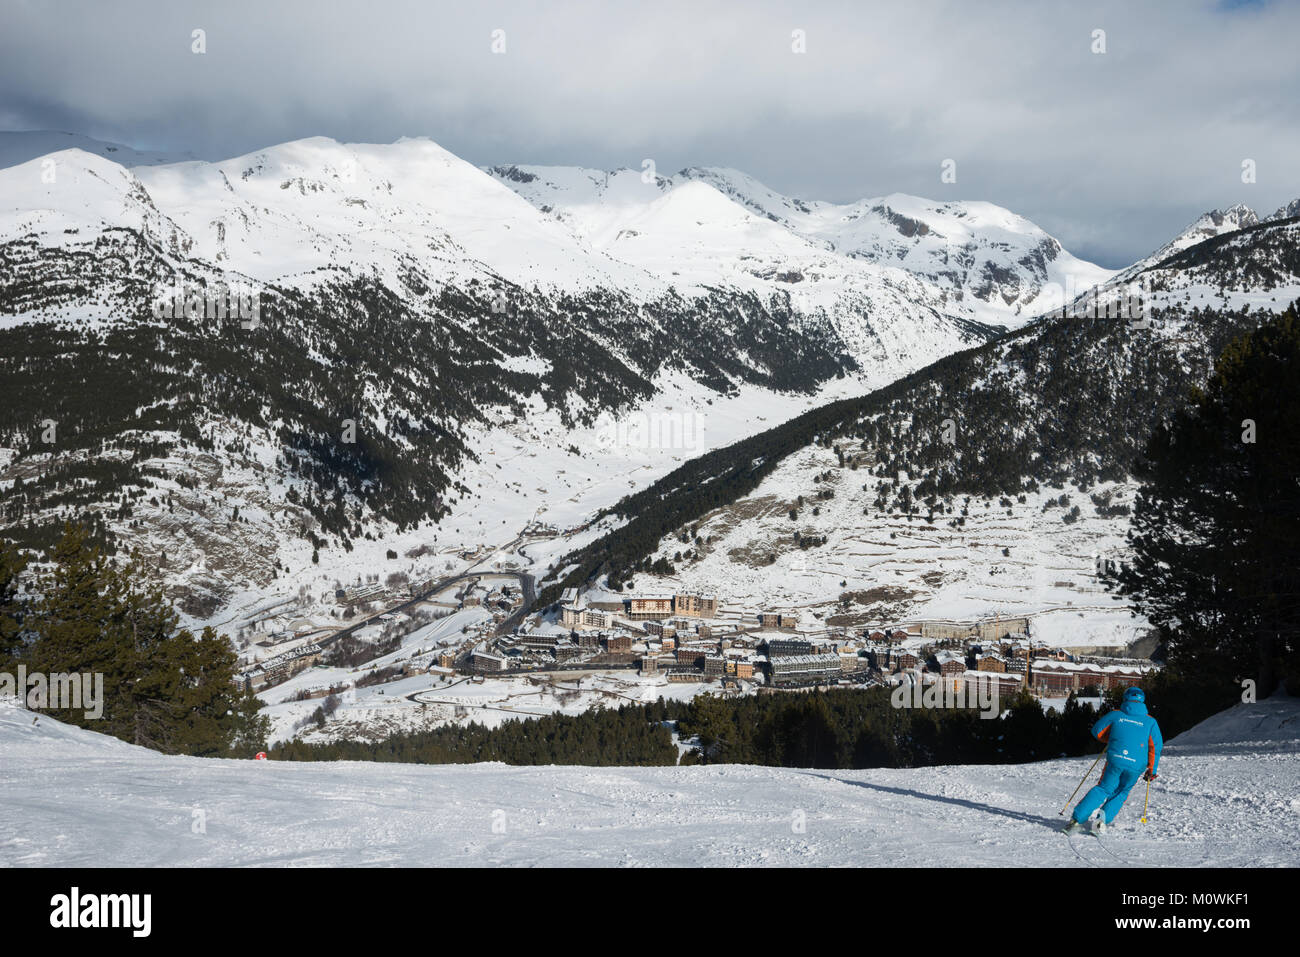 Soldeu viewed from above with a ski instructor in the foreground, Grandvalaria ski area, Andorra, Europe - Stock Image